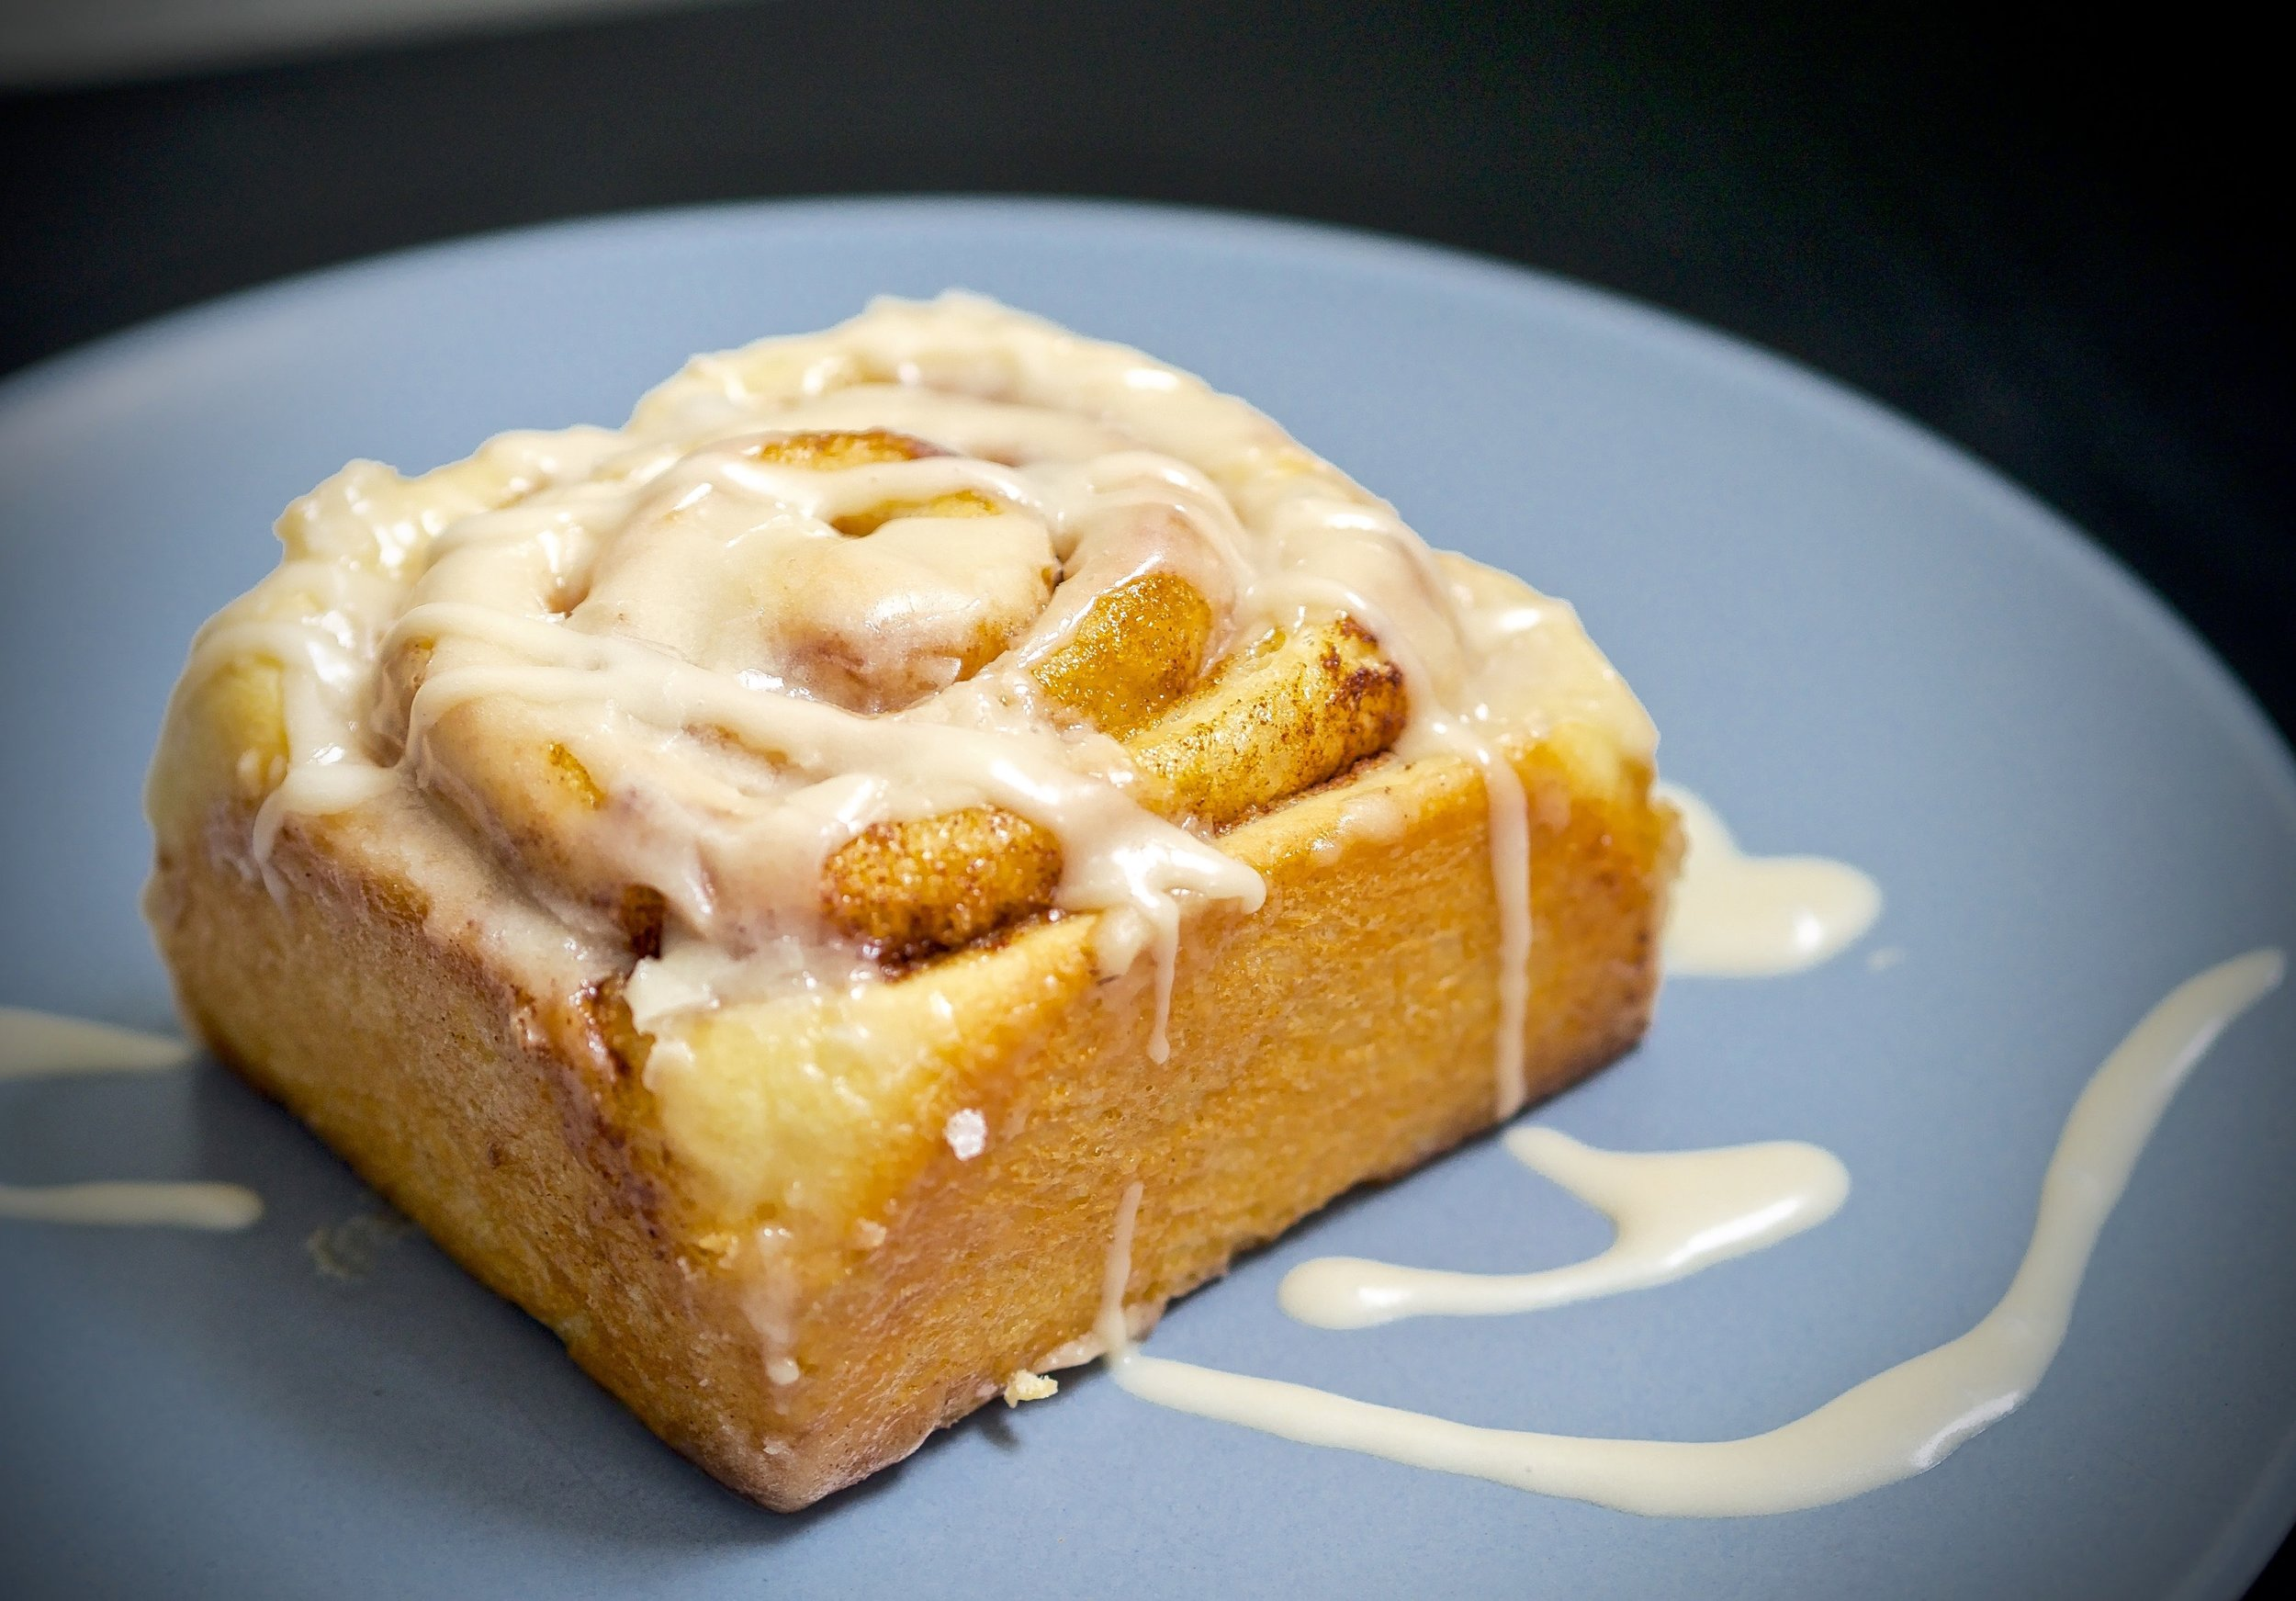 These cinnamon rolls are unbelievable. I wish this could be scratch-n-sniff.